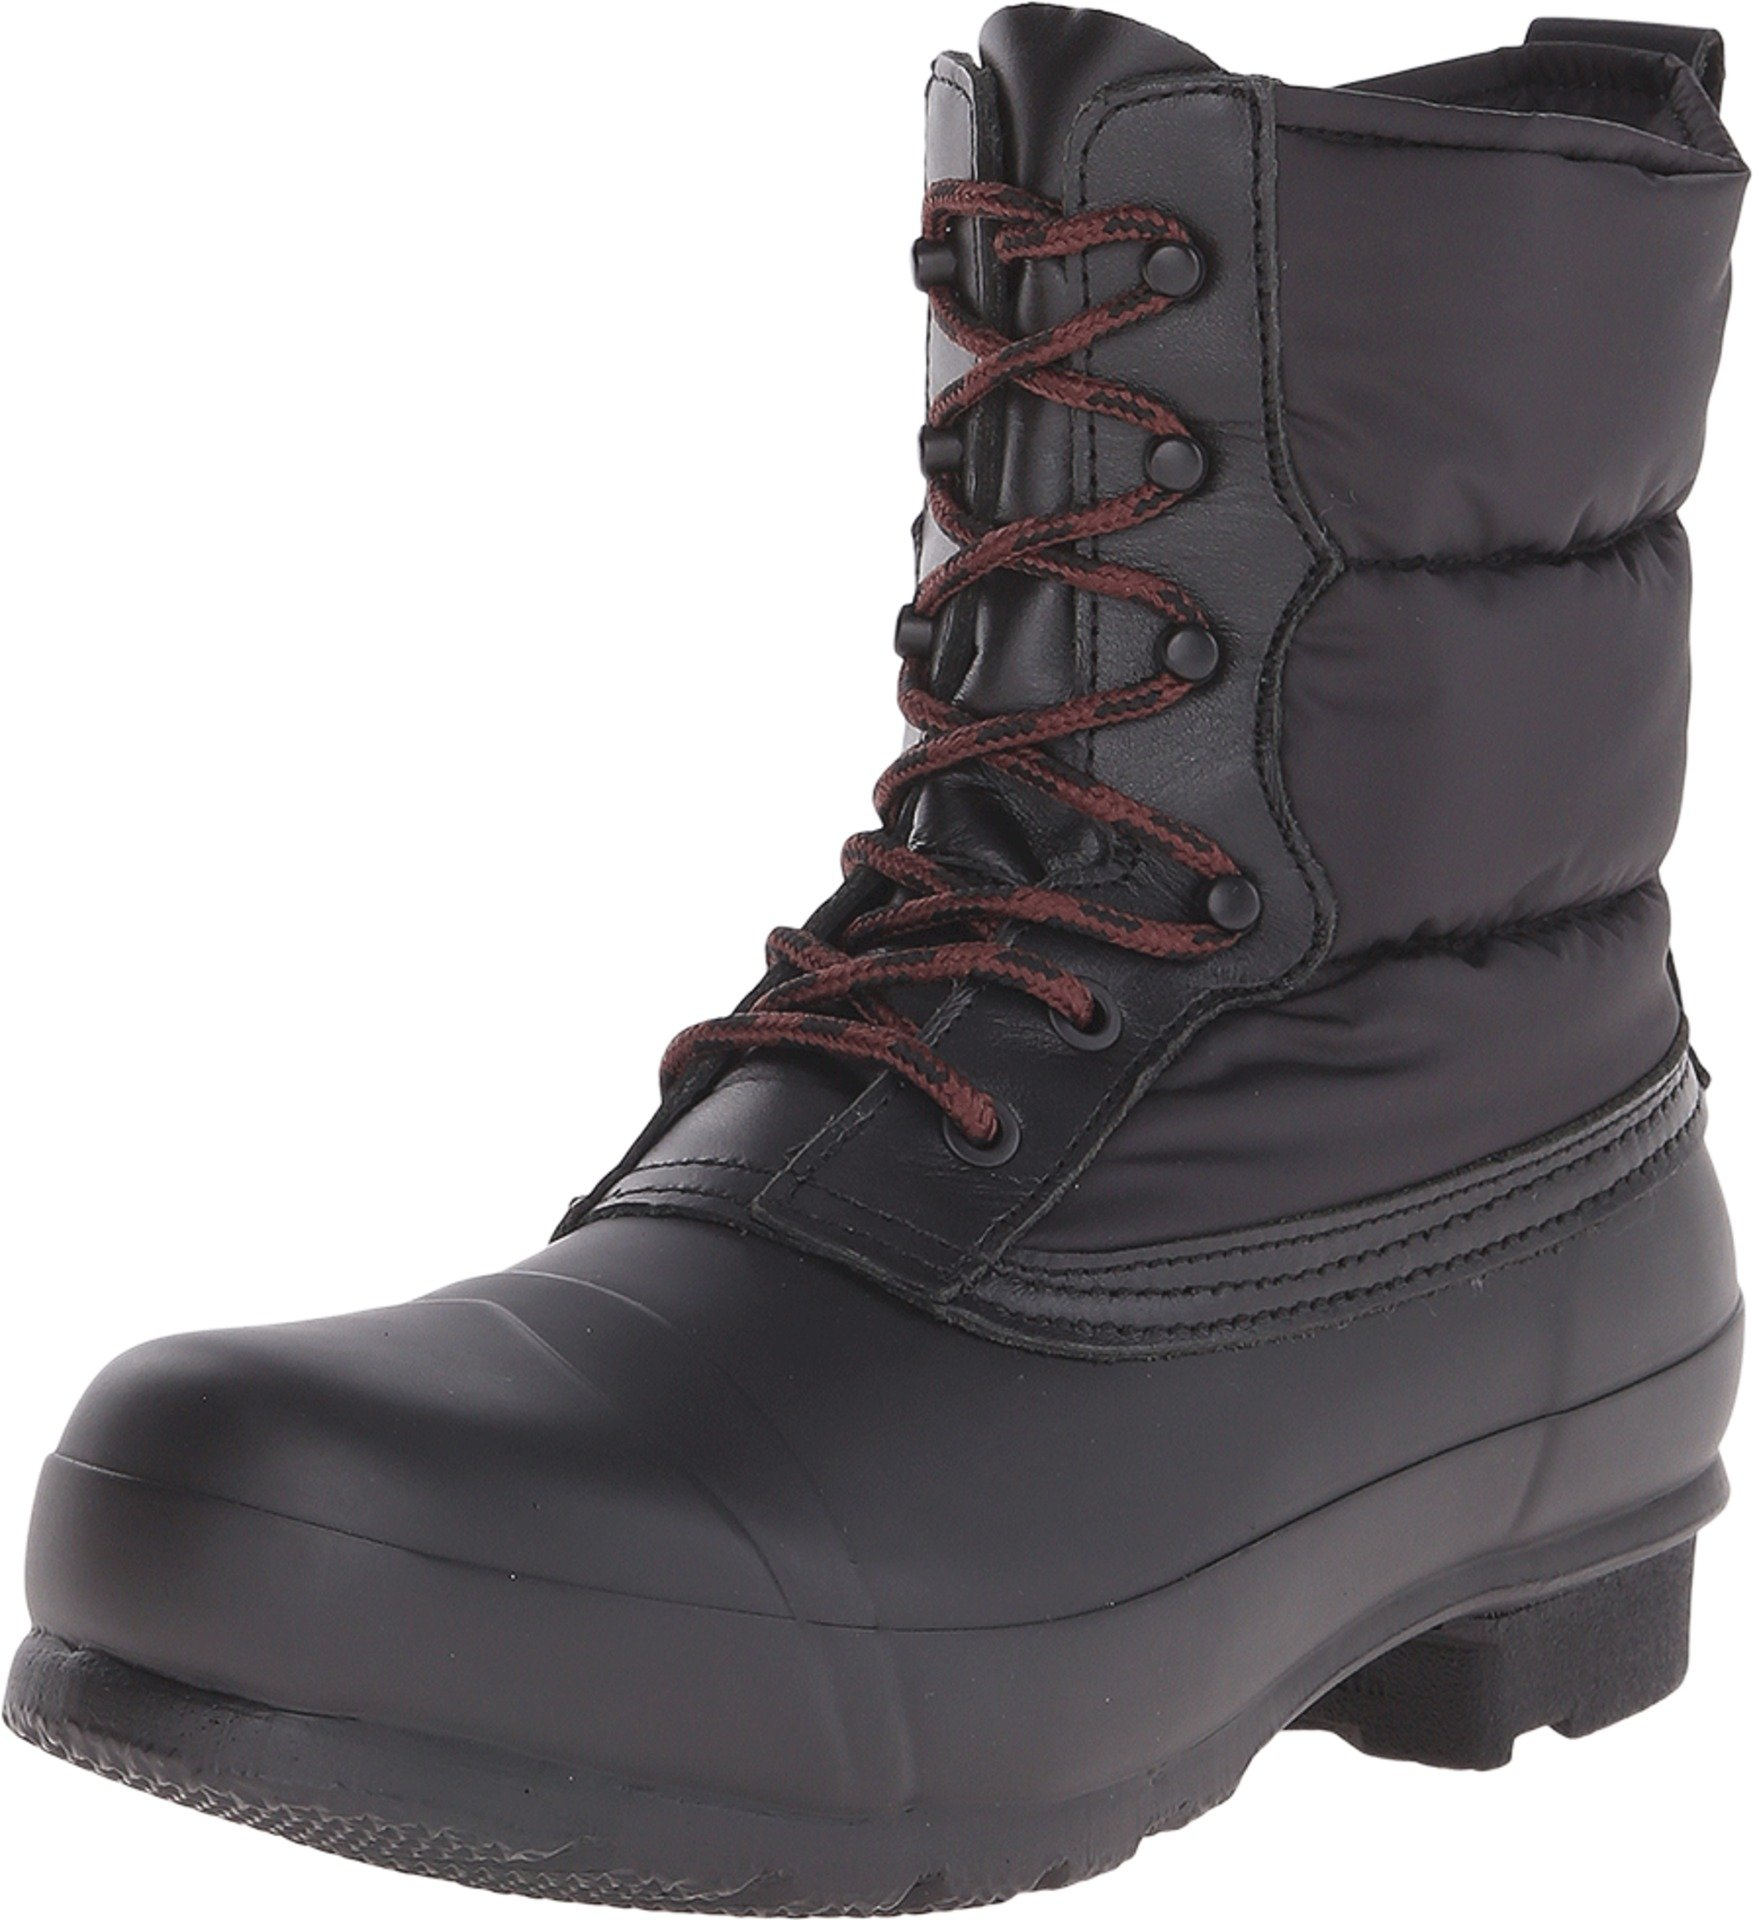 Hunter Womens Original Quilted Lace-Up Boots Black Rain Boot - 10 by Hunter